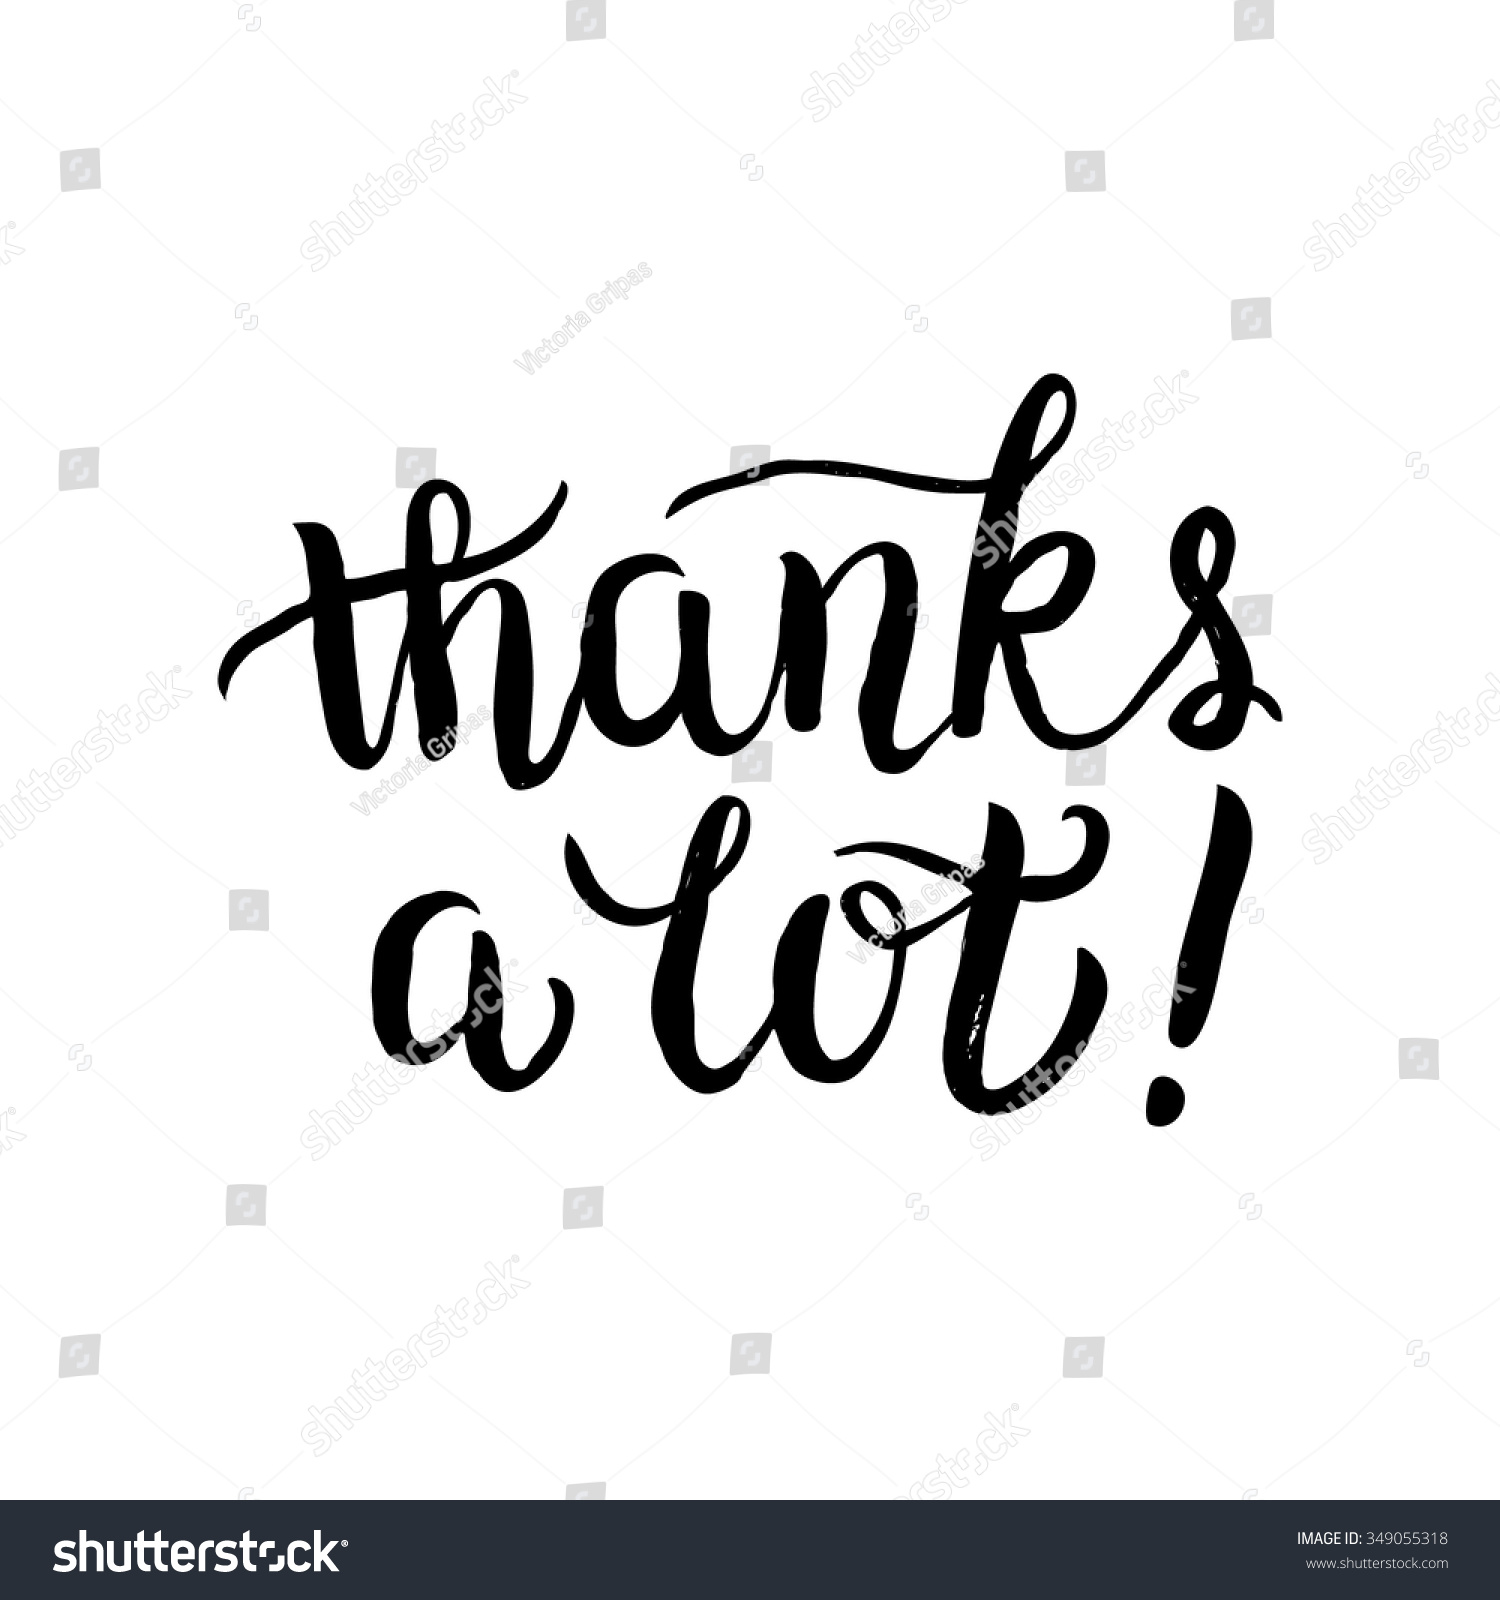 thanks card hand brush lettering calligraphy stock vector thanks a lot card hand brush lettering calligraphy script isolated on white background real